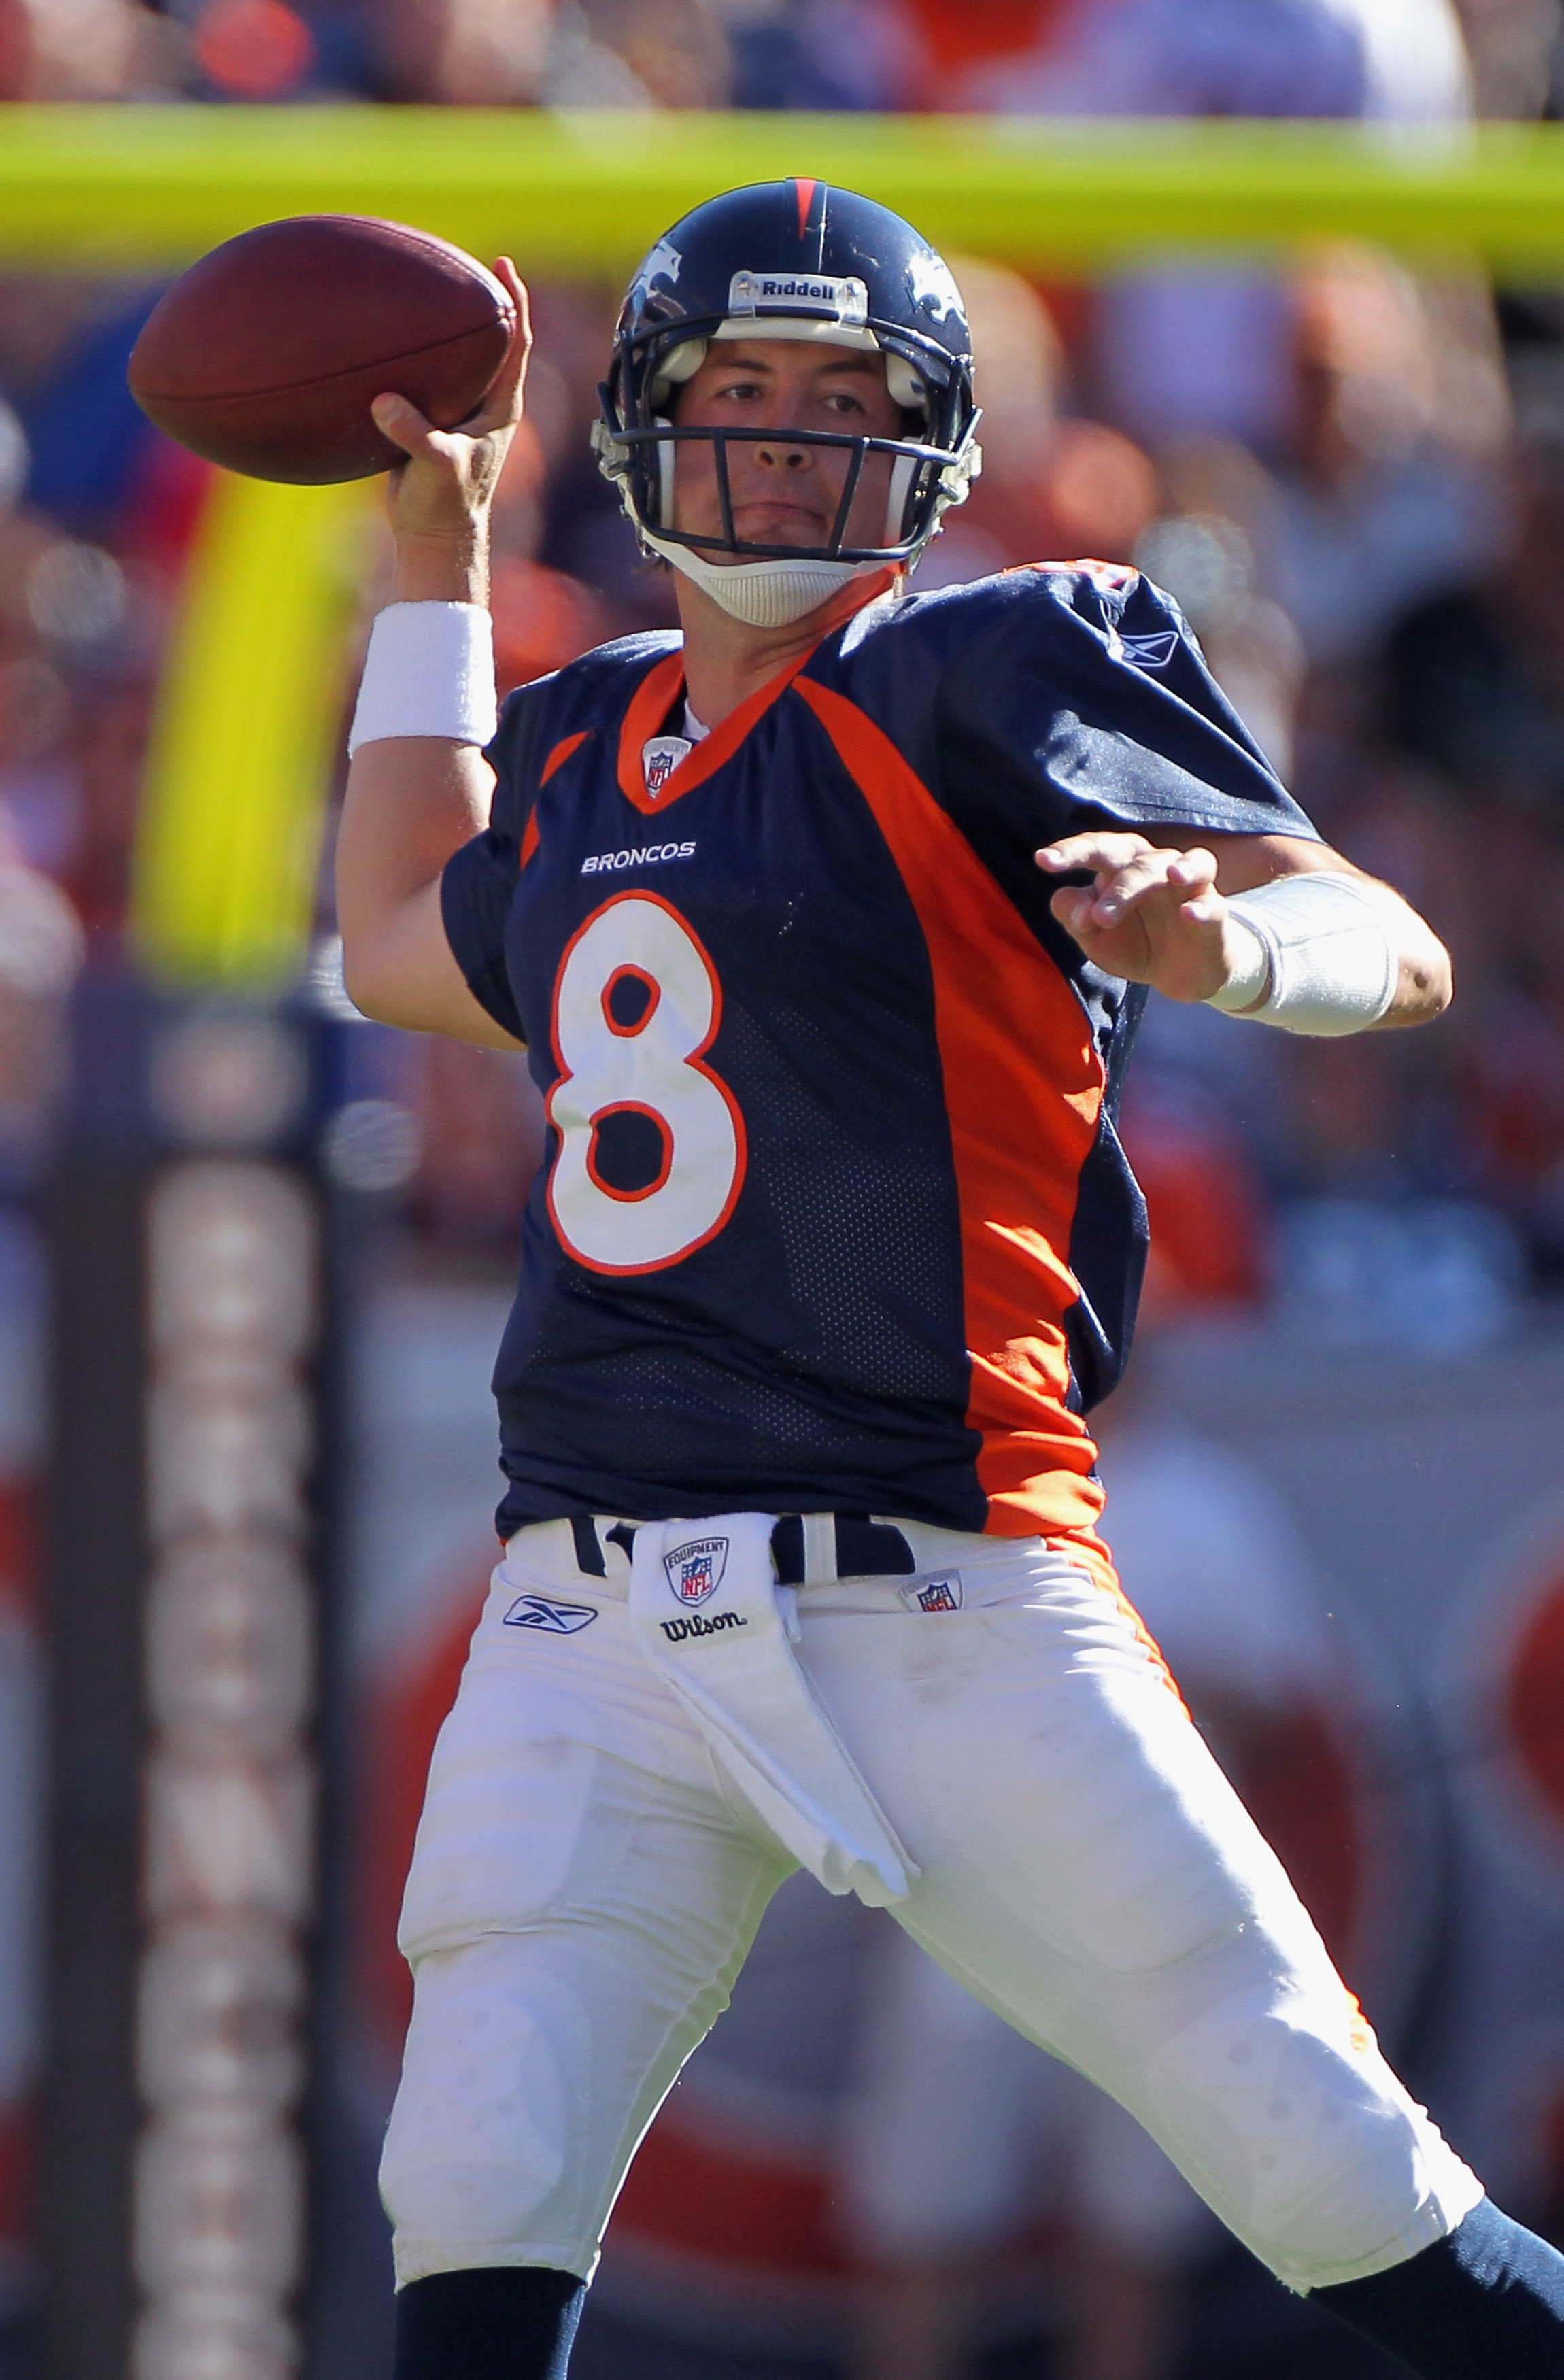 DENVER - SEPTEMBER 19:  Quarterback Kyle Orton #8 of the Denver Broncos against the Seattle Seahawks at INVESCO Field at Mile High on September 19, 2010 in Denver, Colorado. The Broncos defeated the Seahawks 31-14.  (Photo by Doug Pensinger/Getty Images)